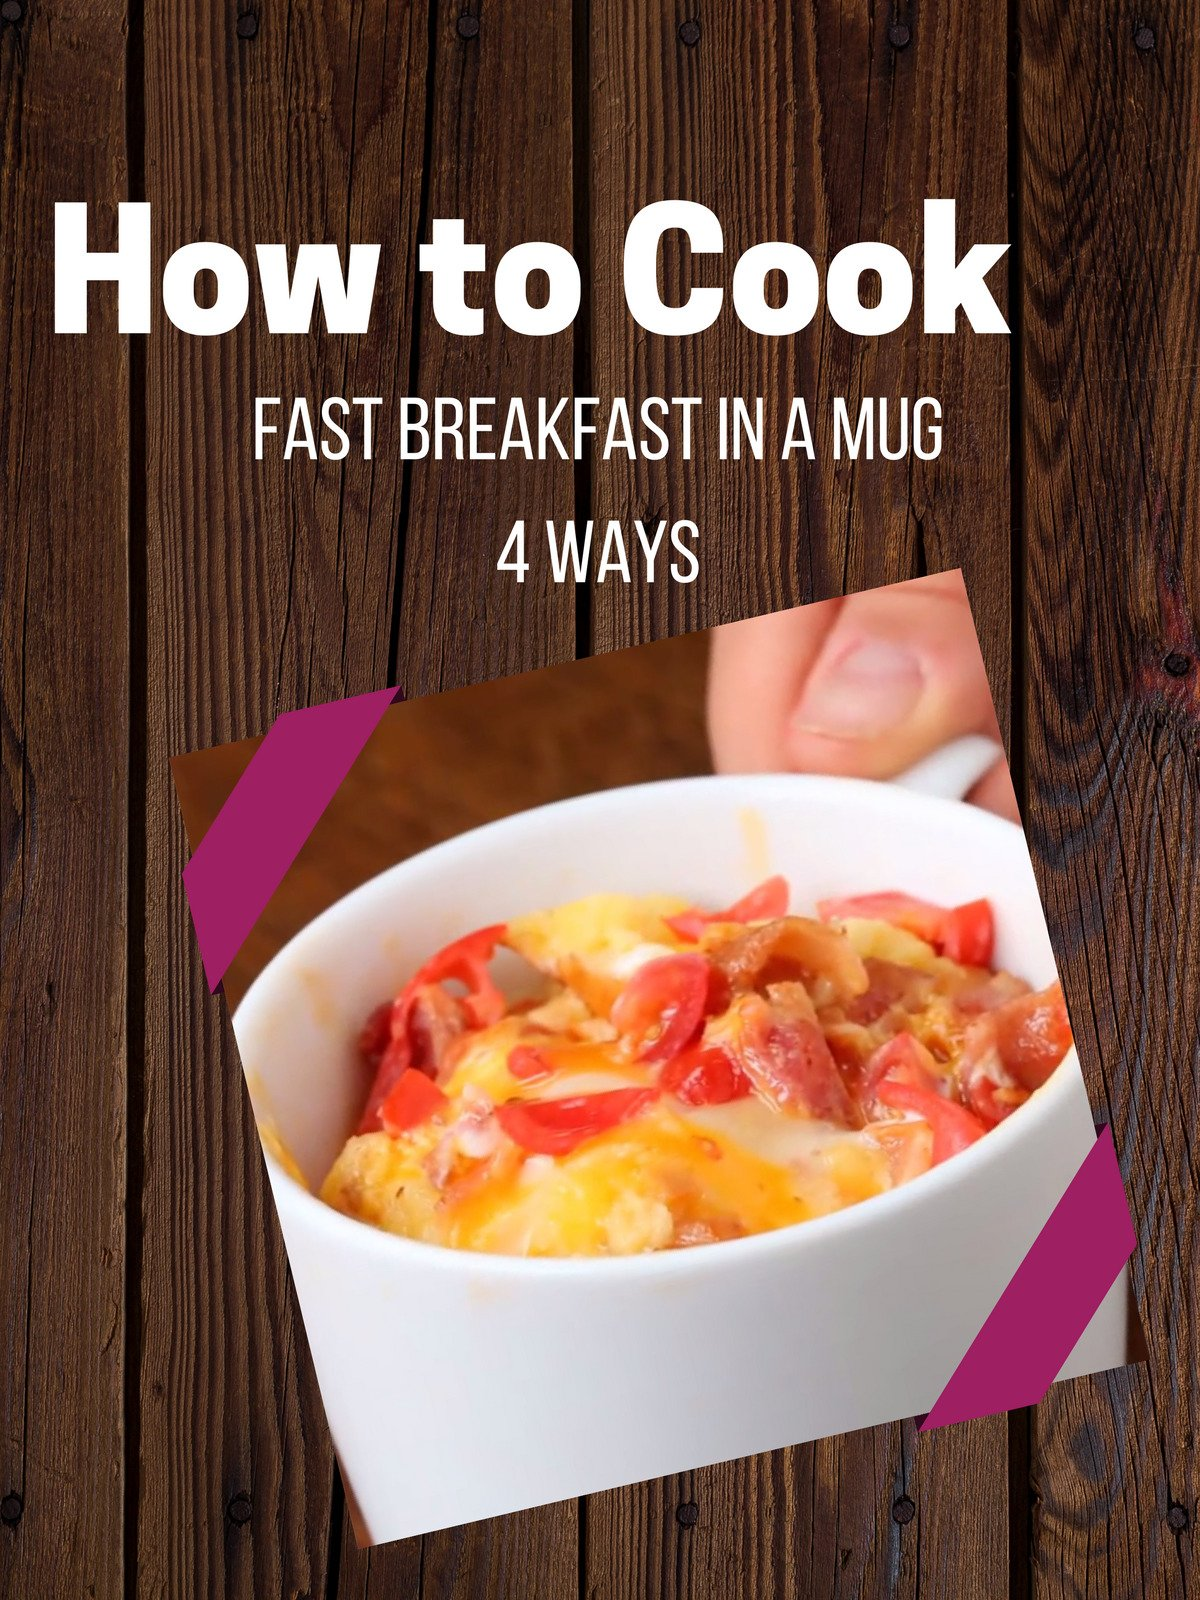 Fast Breakfast In A Mug 4 Ways